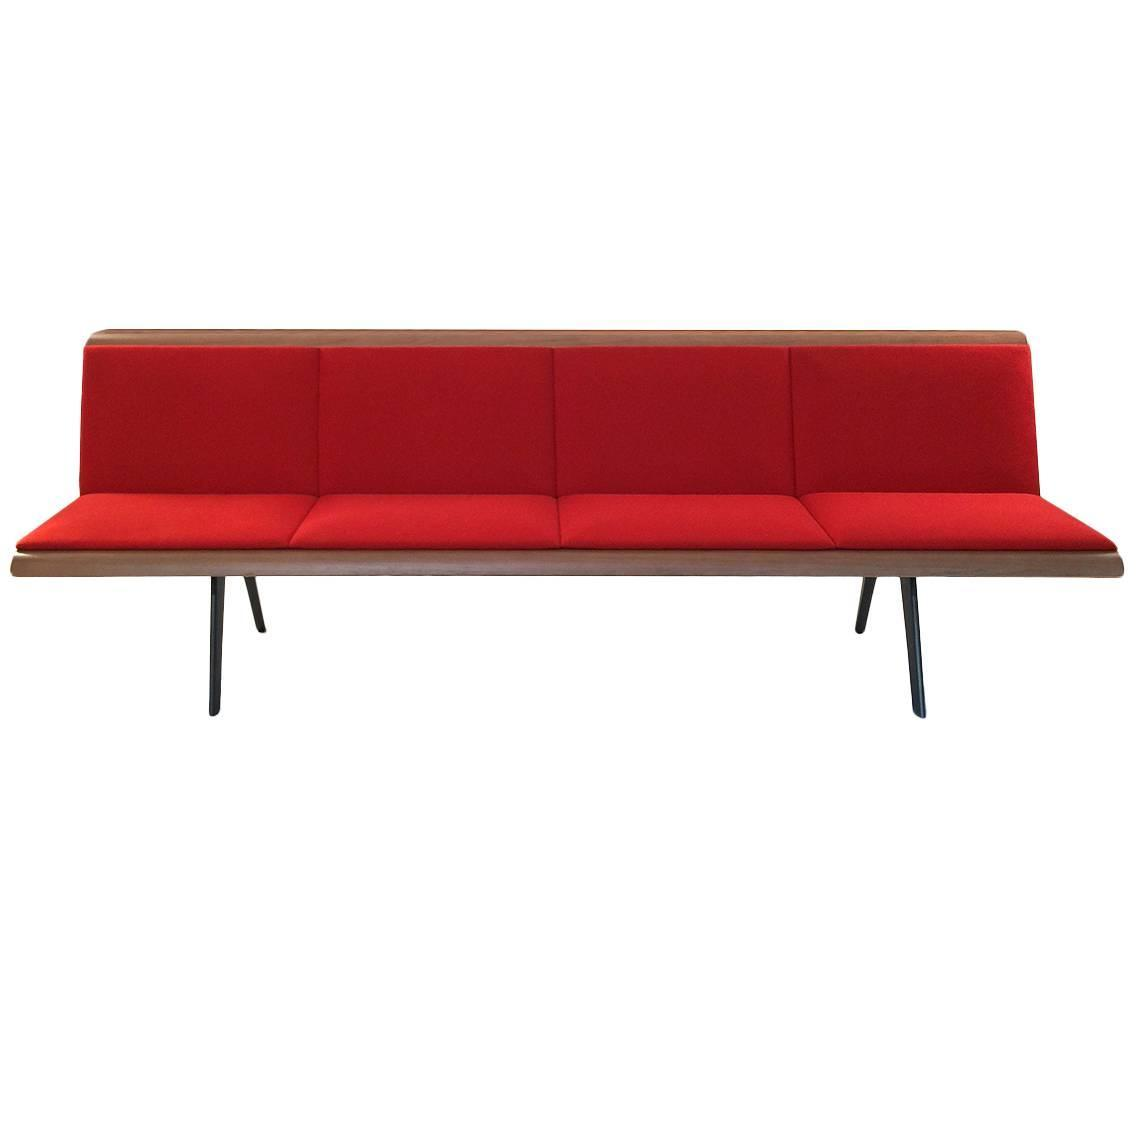 Red Zinta Four Seat Bench By Lievore Altherr Molina For Arper, Italy Modern  For Sale At 1stdibs